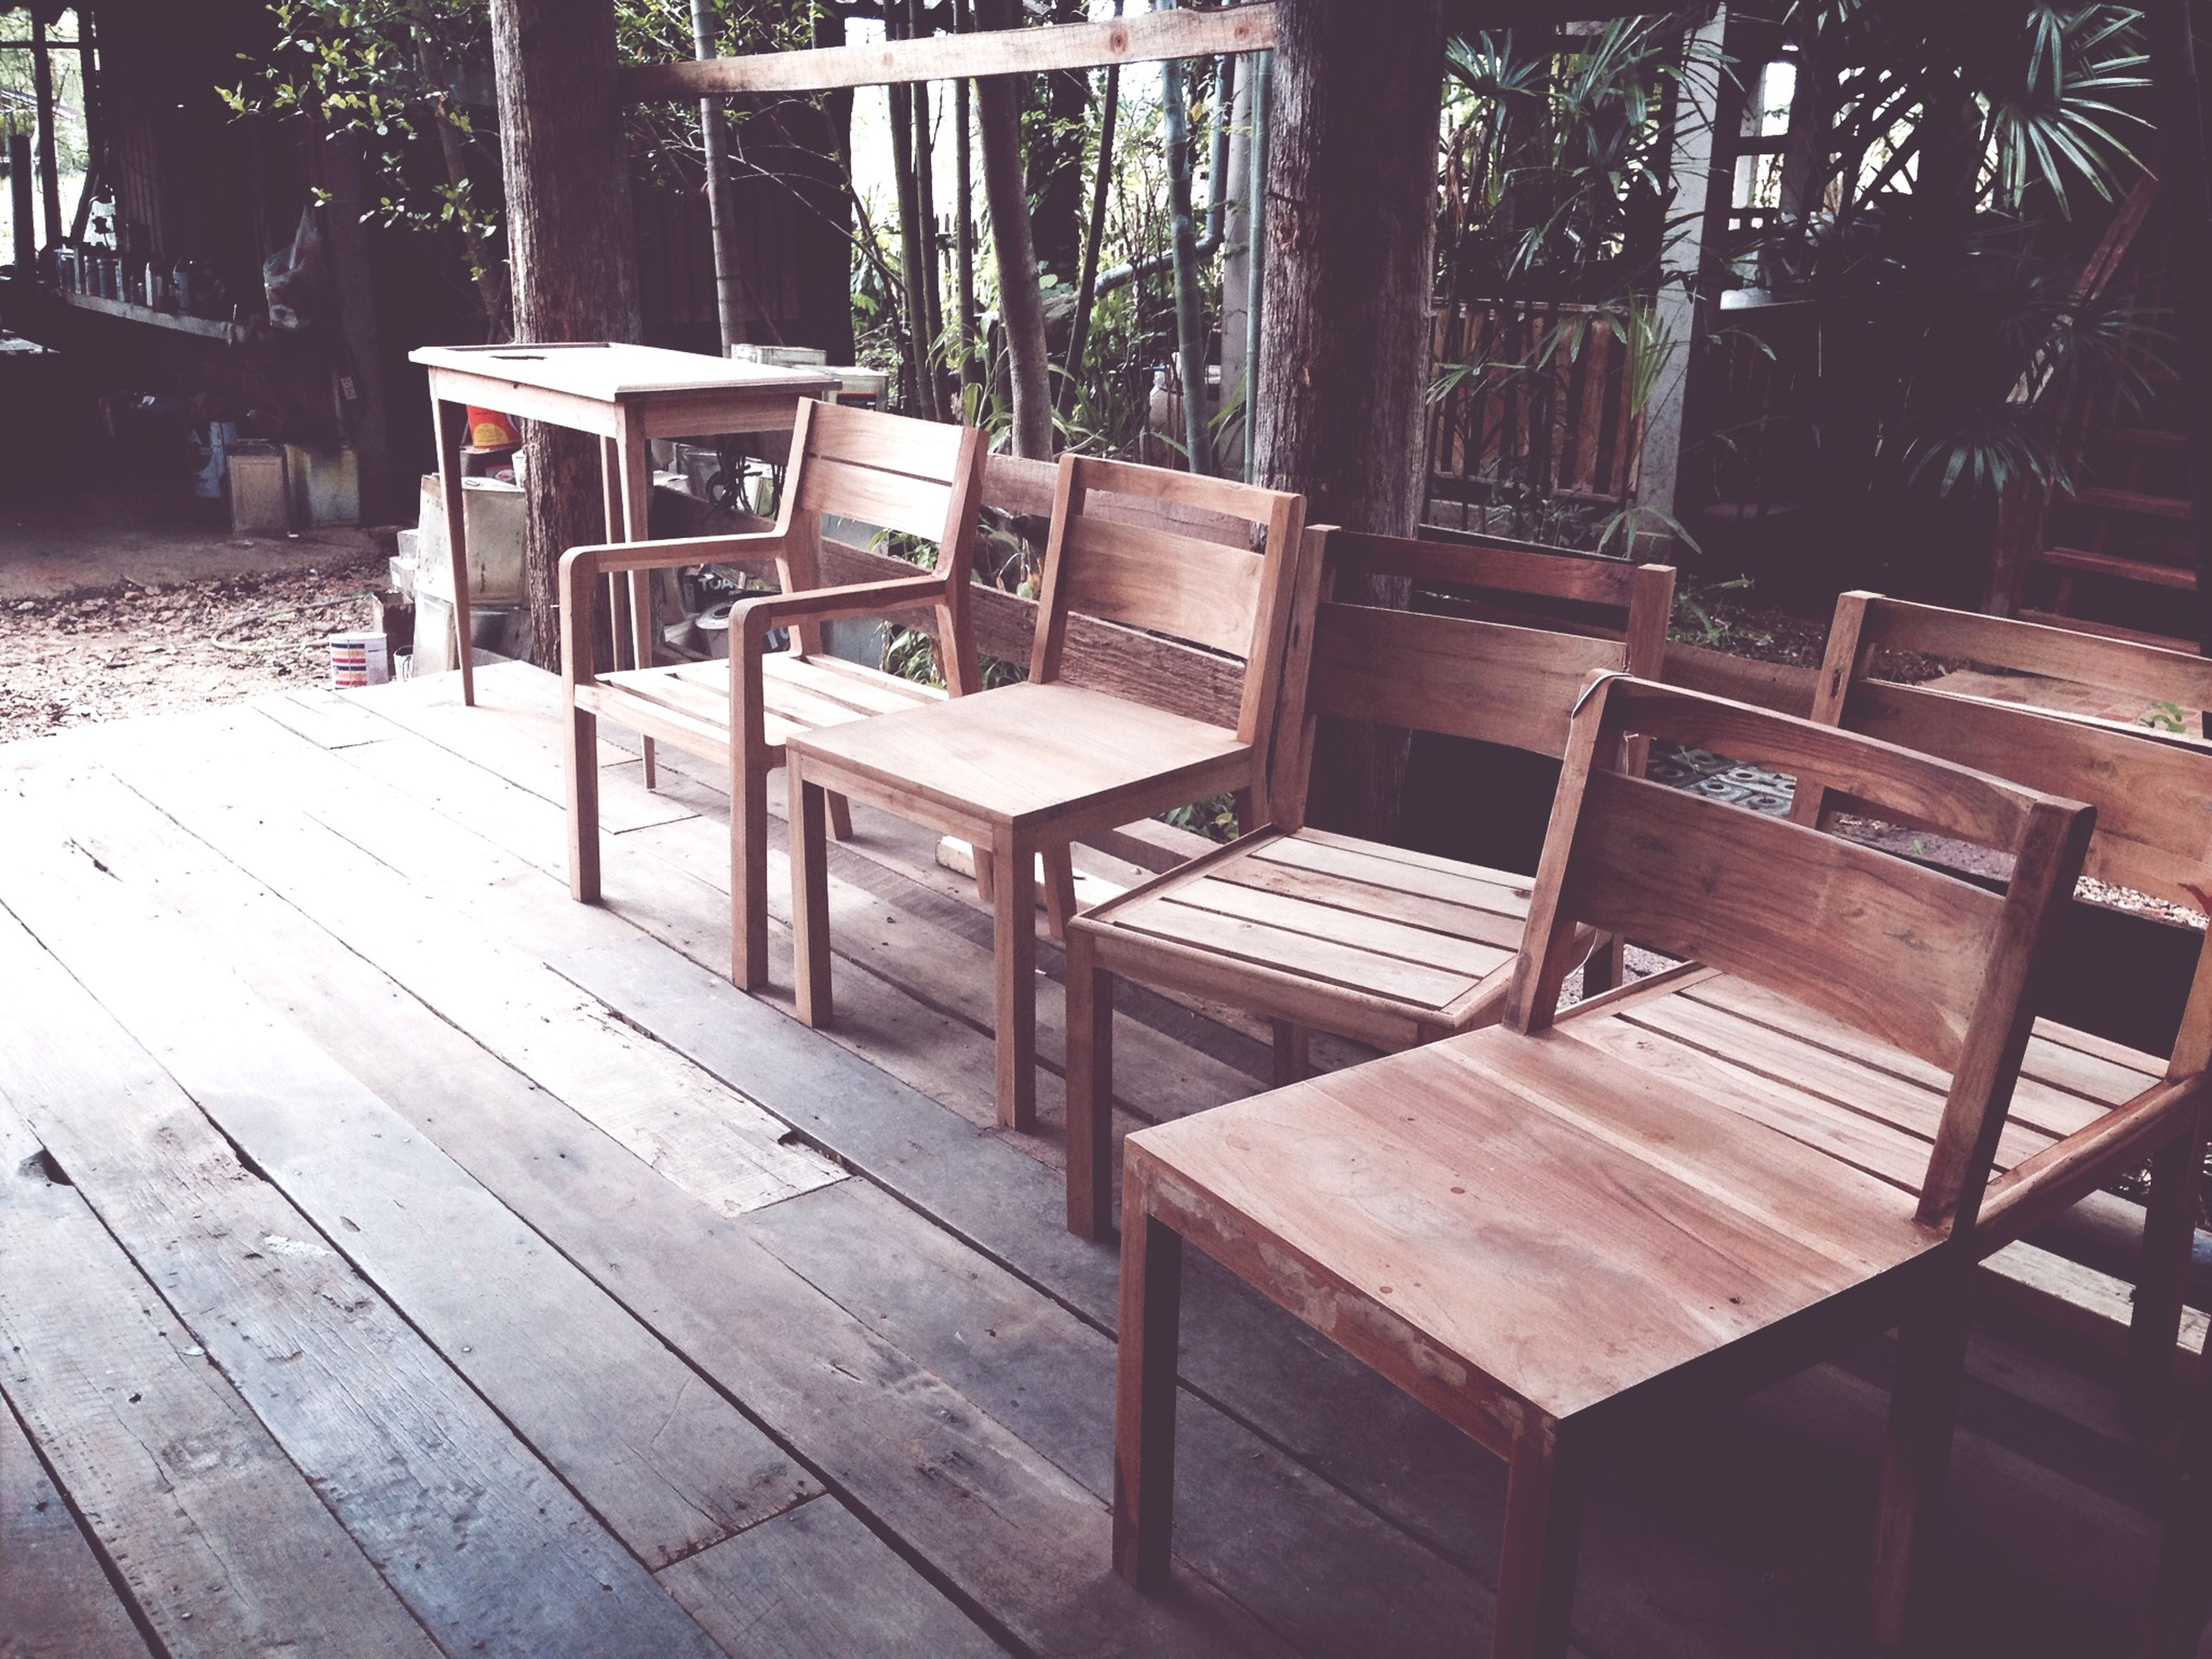 chair, empty, absence, bench, wood - material, seat, table, tree, sunlight, furniture, relaxation, shadow, wooden, wood, day, built structure, park bench, no people, outdoors, high angle view